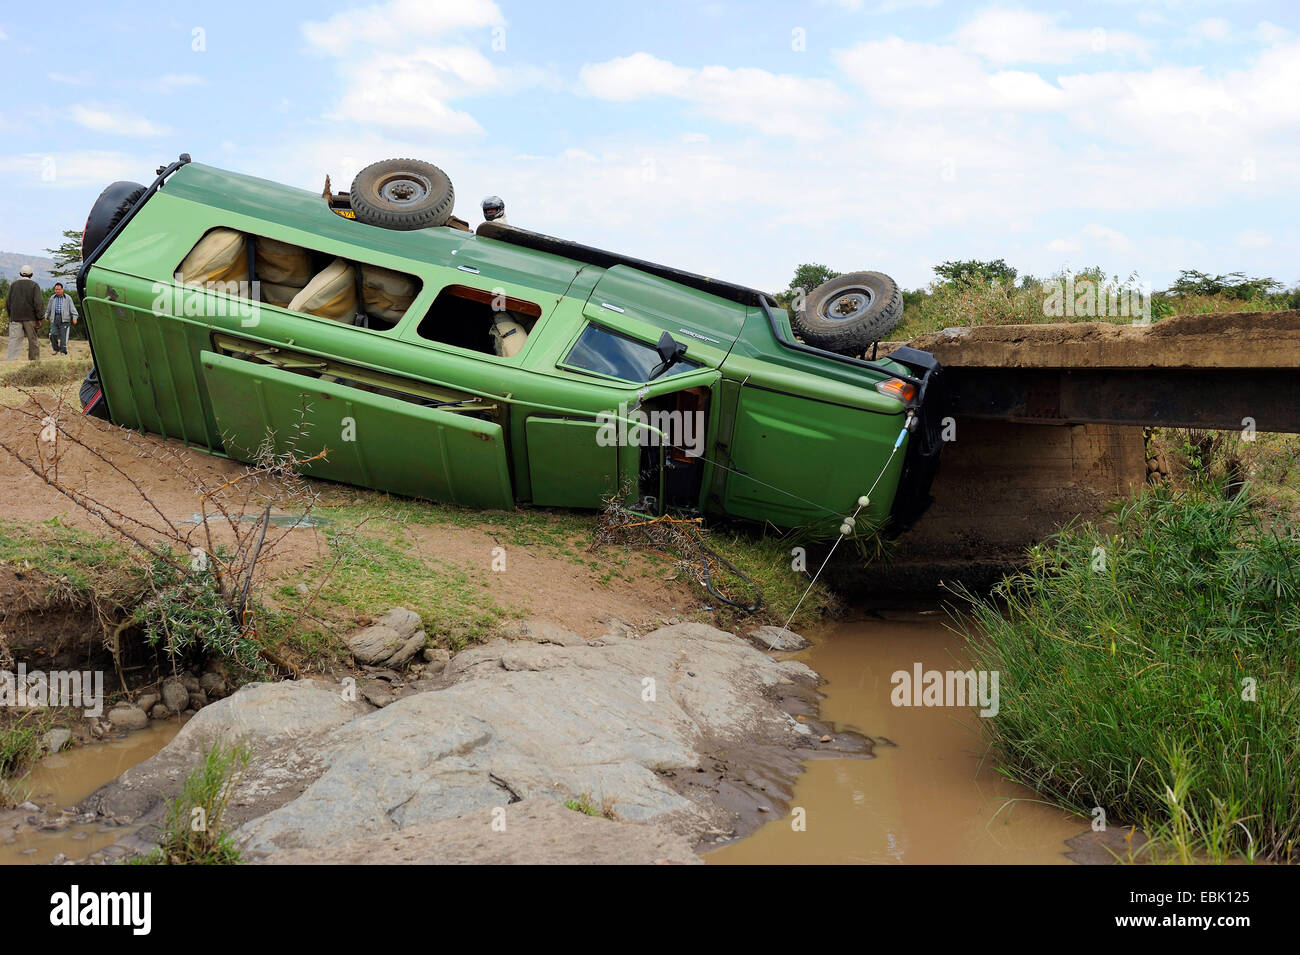 safari-car-tumbled-from-a-bridge-kenya-m